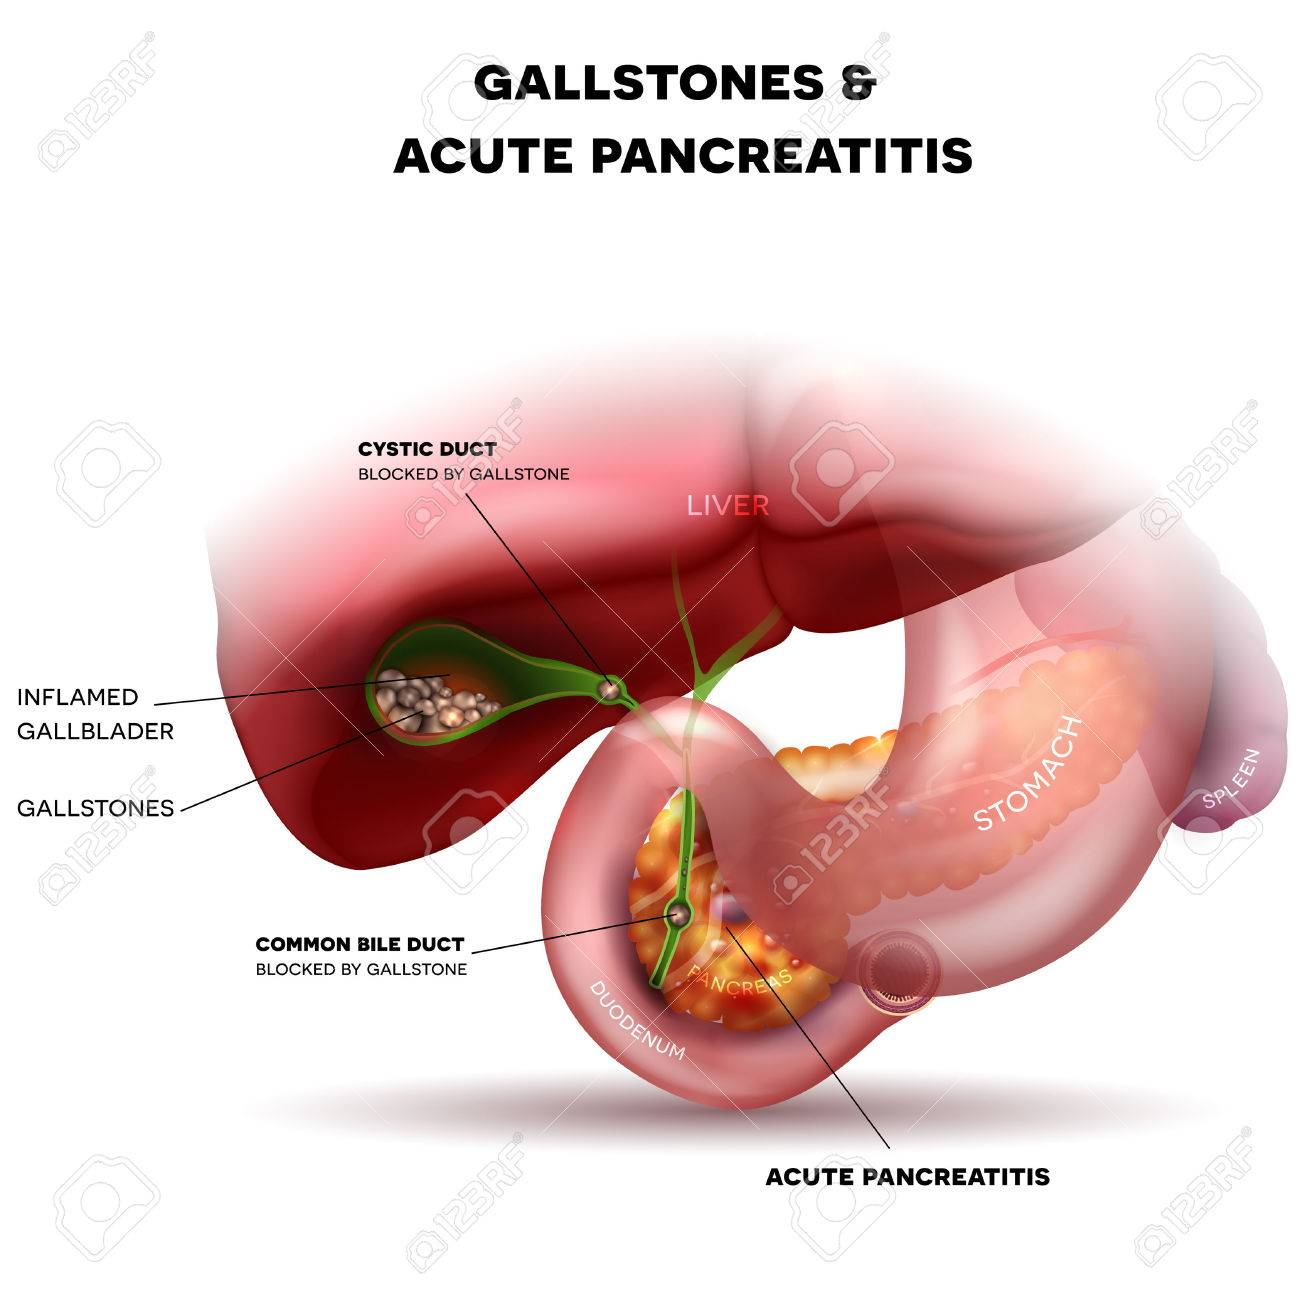 hight resolution of gallstones in the gallbladder and acute pancreatitis anatomy bright detailed illustration stock vector